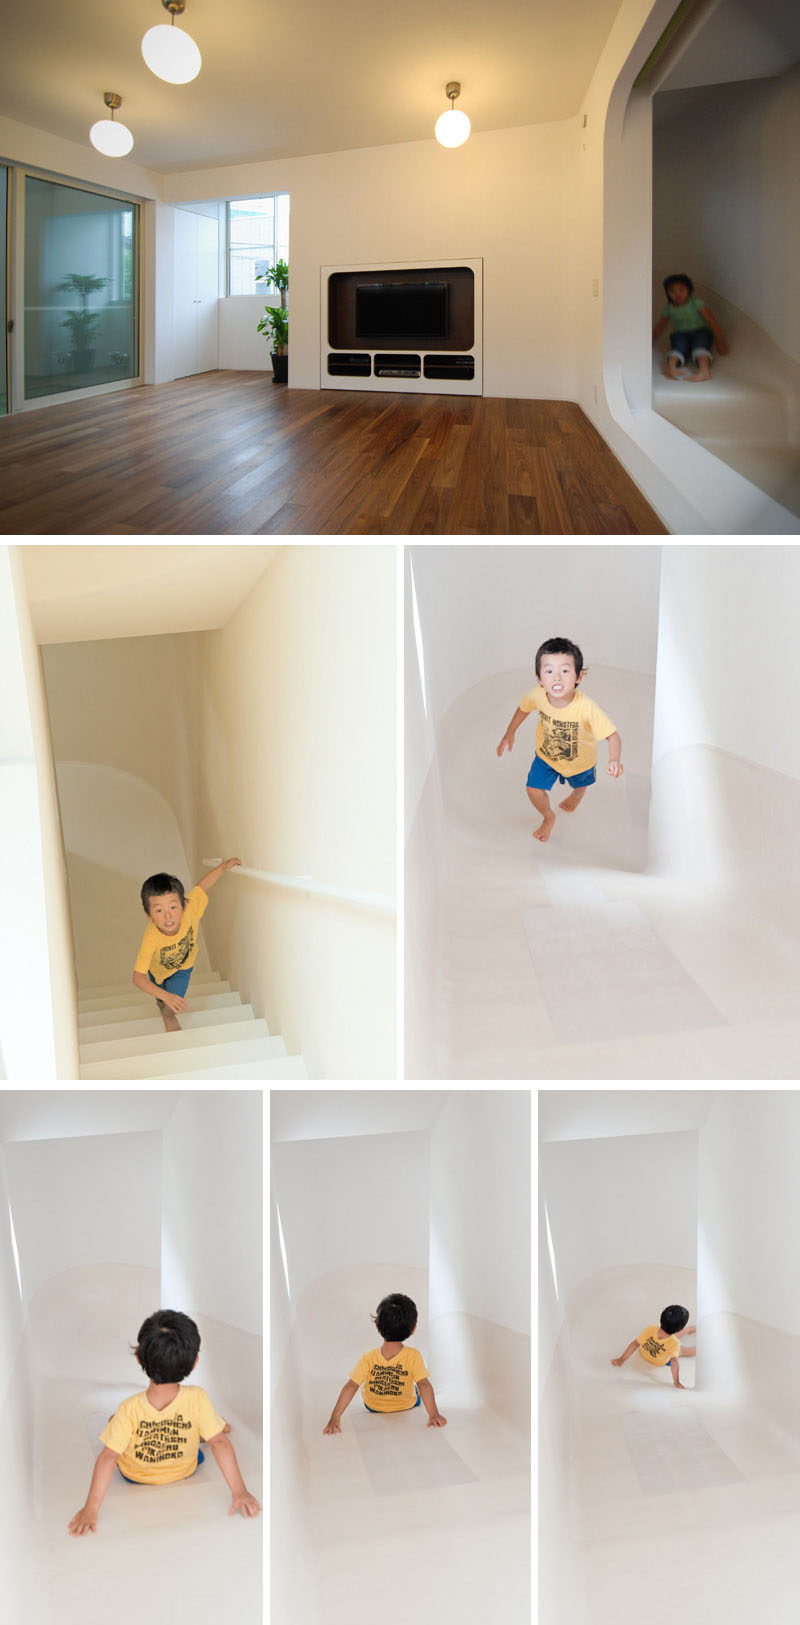 This indoor slide connects the three levels of this house and has a flat middle section to make it easy to get off on the second floor if that's where you want to go.